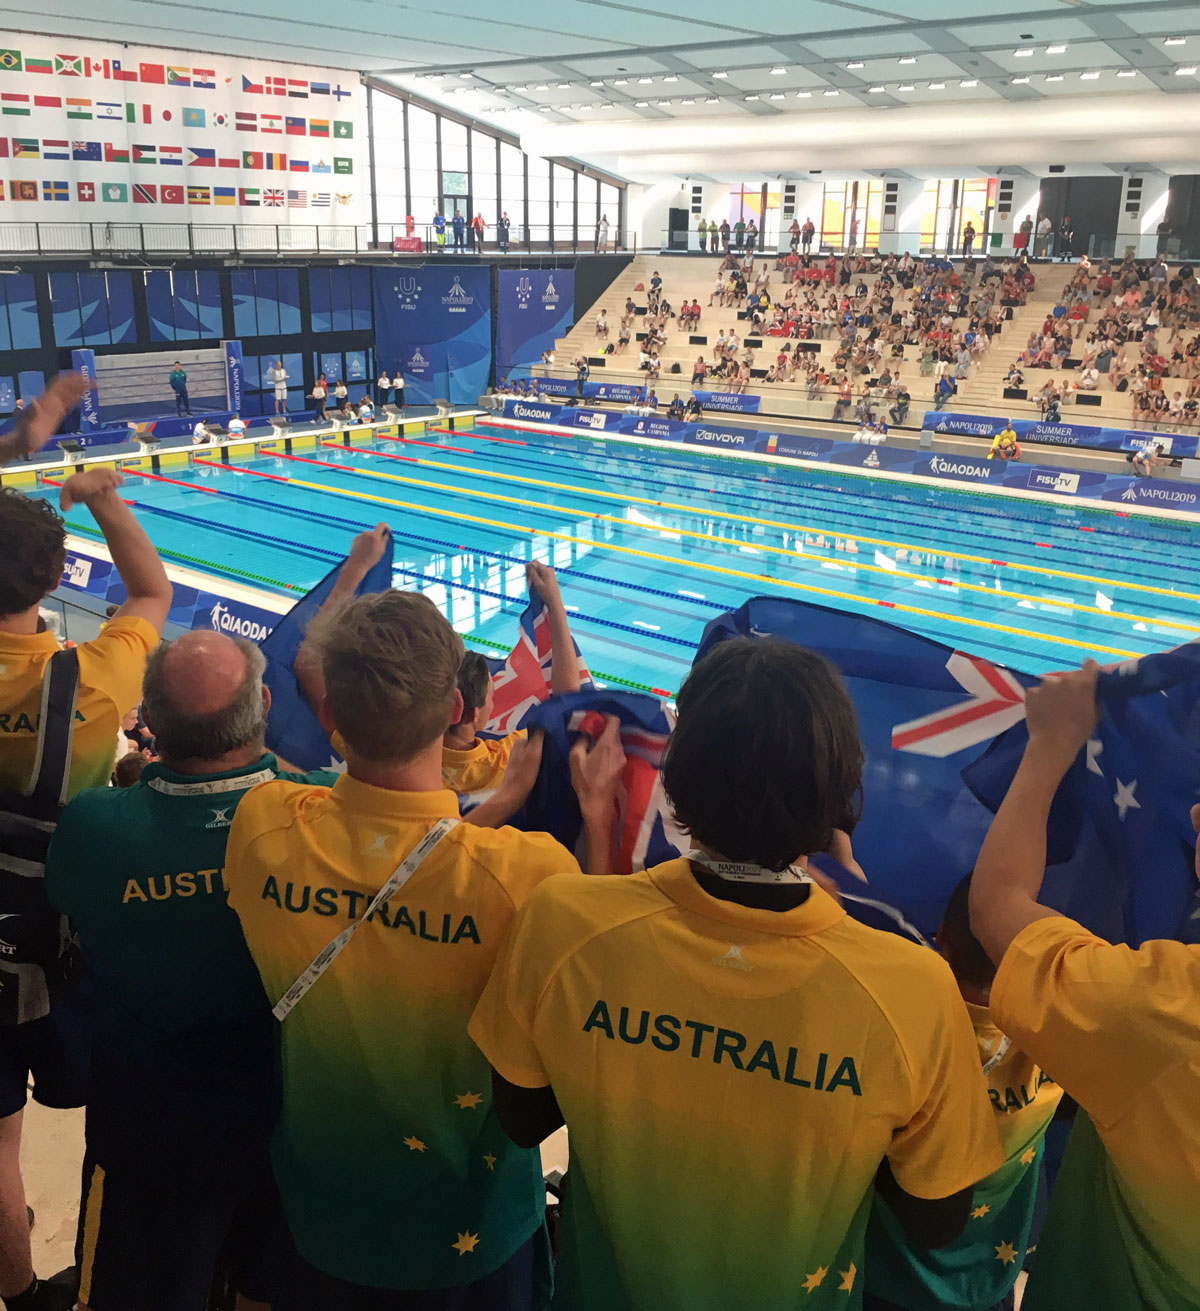 USA complete domination of the pool on final day